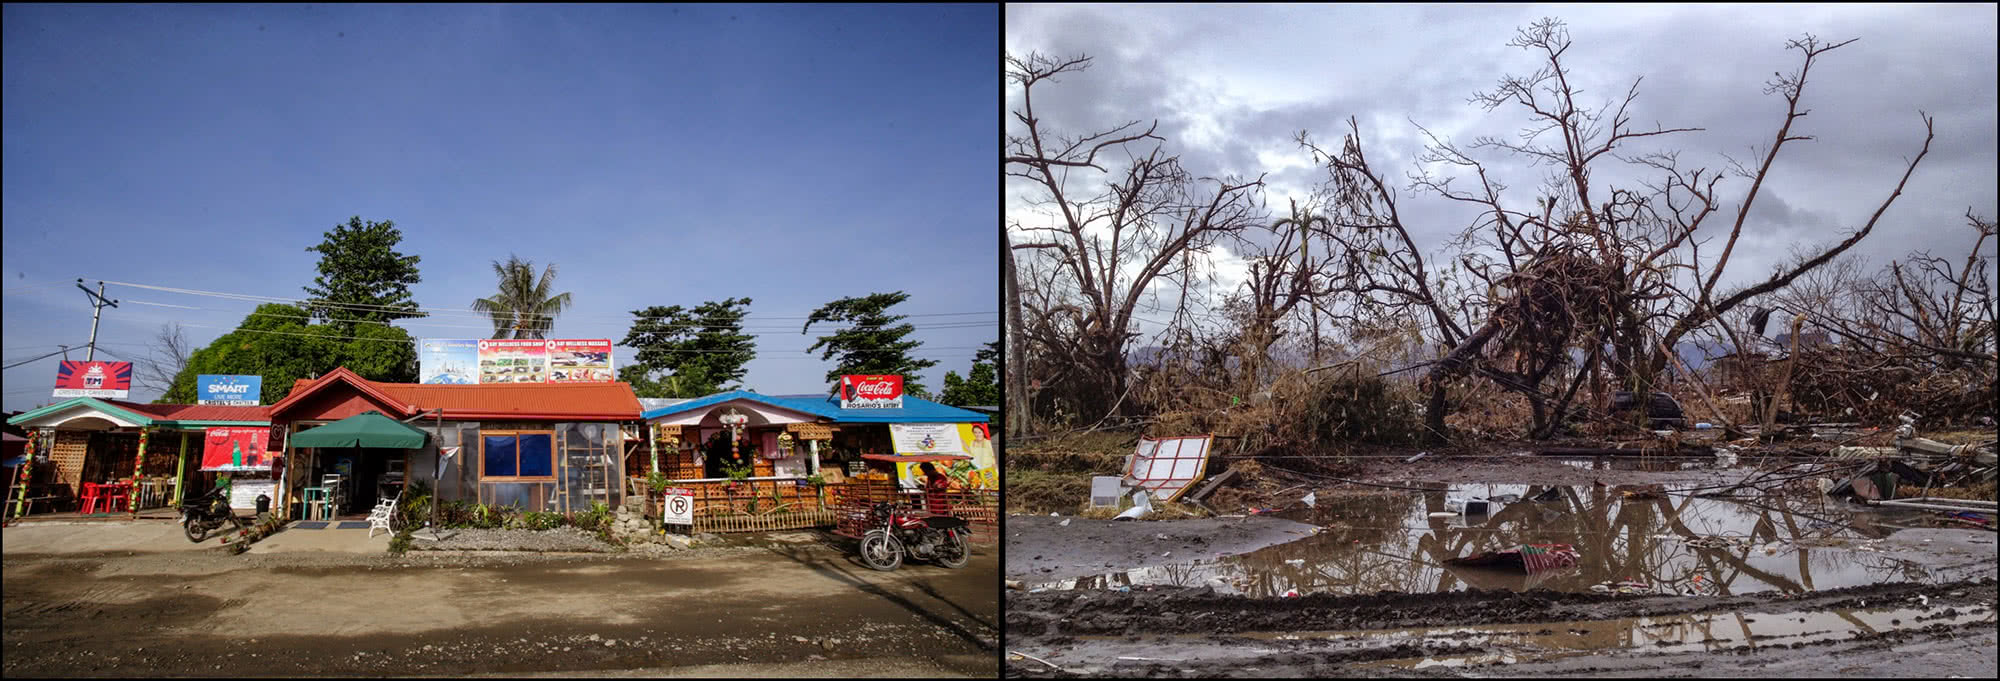 Typhoon Haiyan: before and after